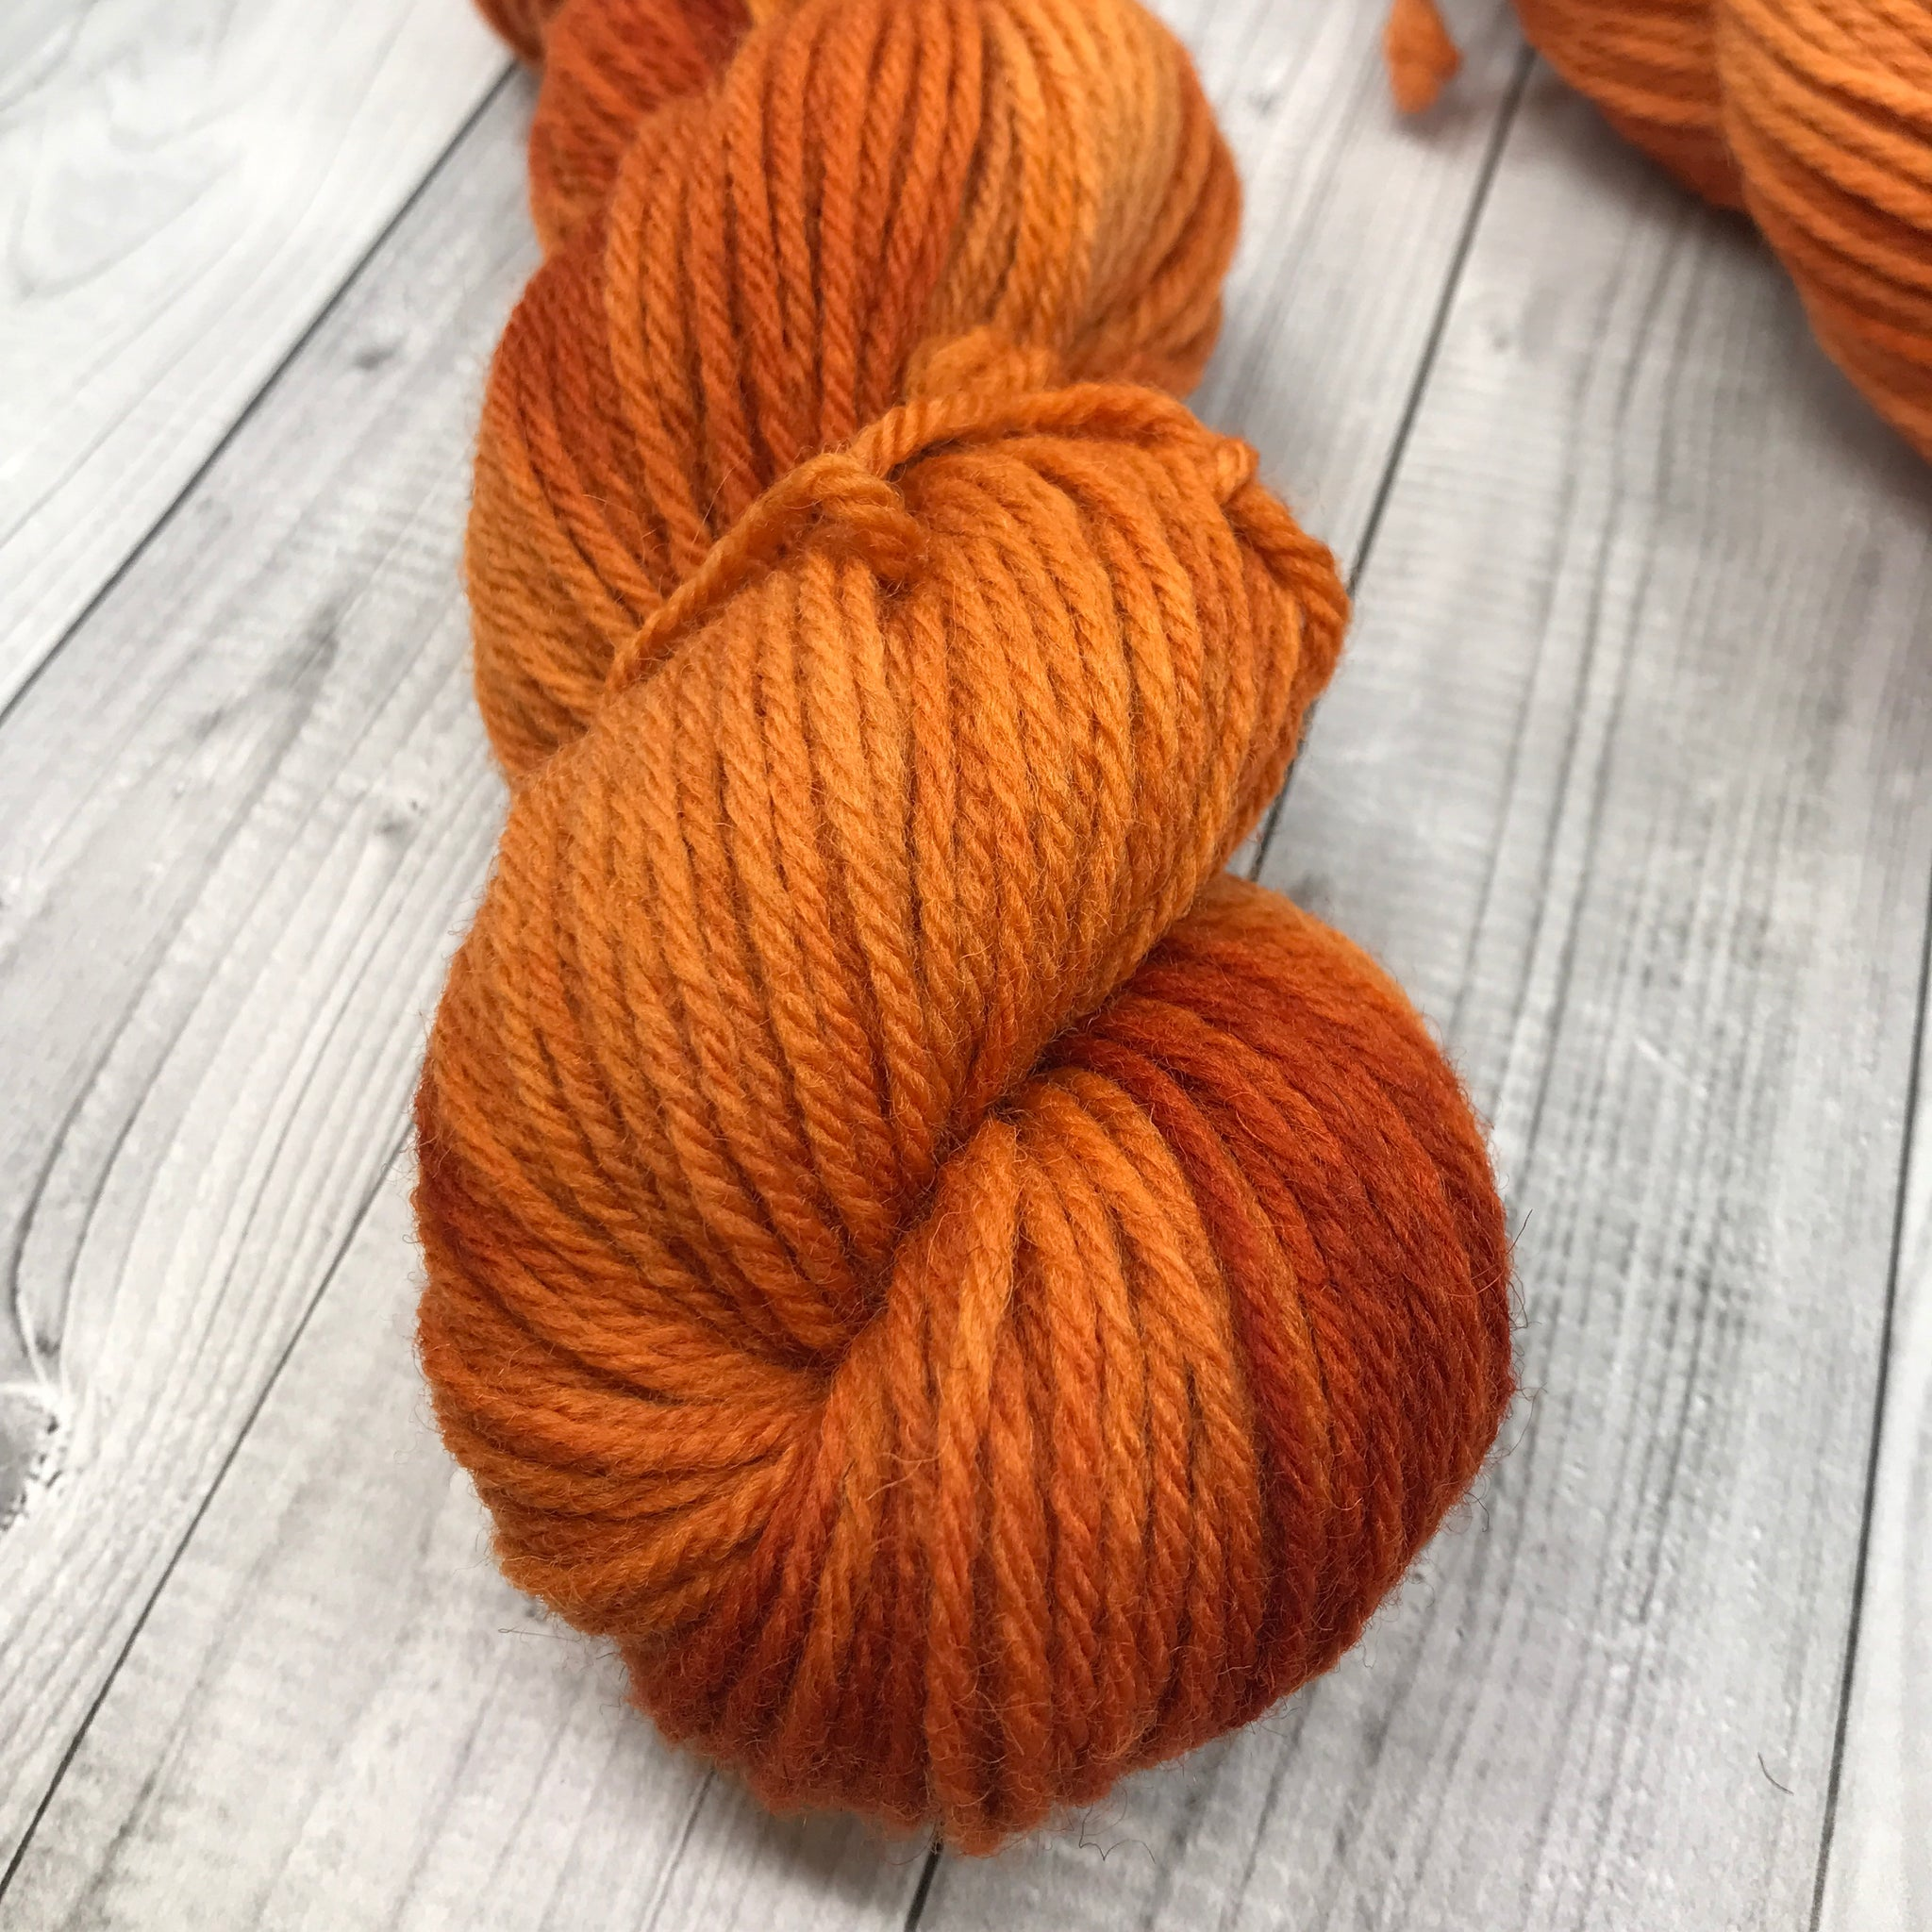 Hunter Highland DK - 50g Mini Skein- Pumpkin Please